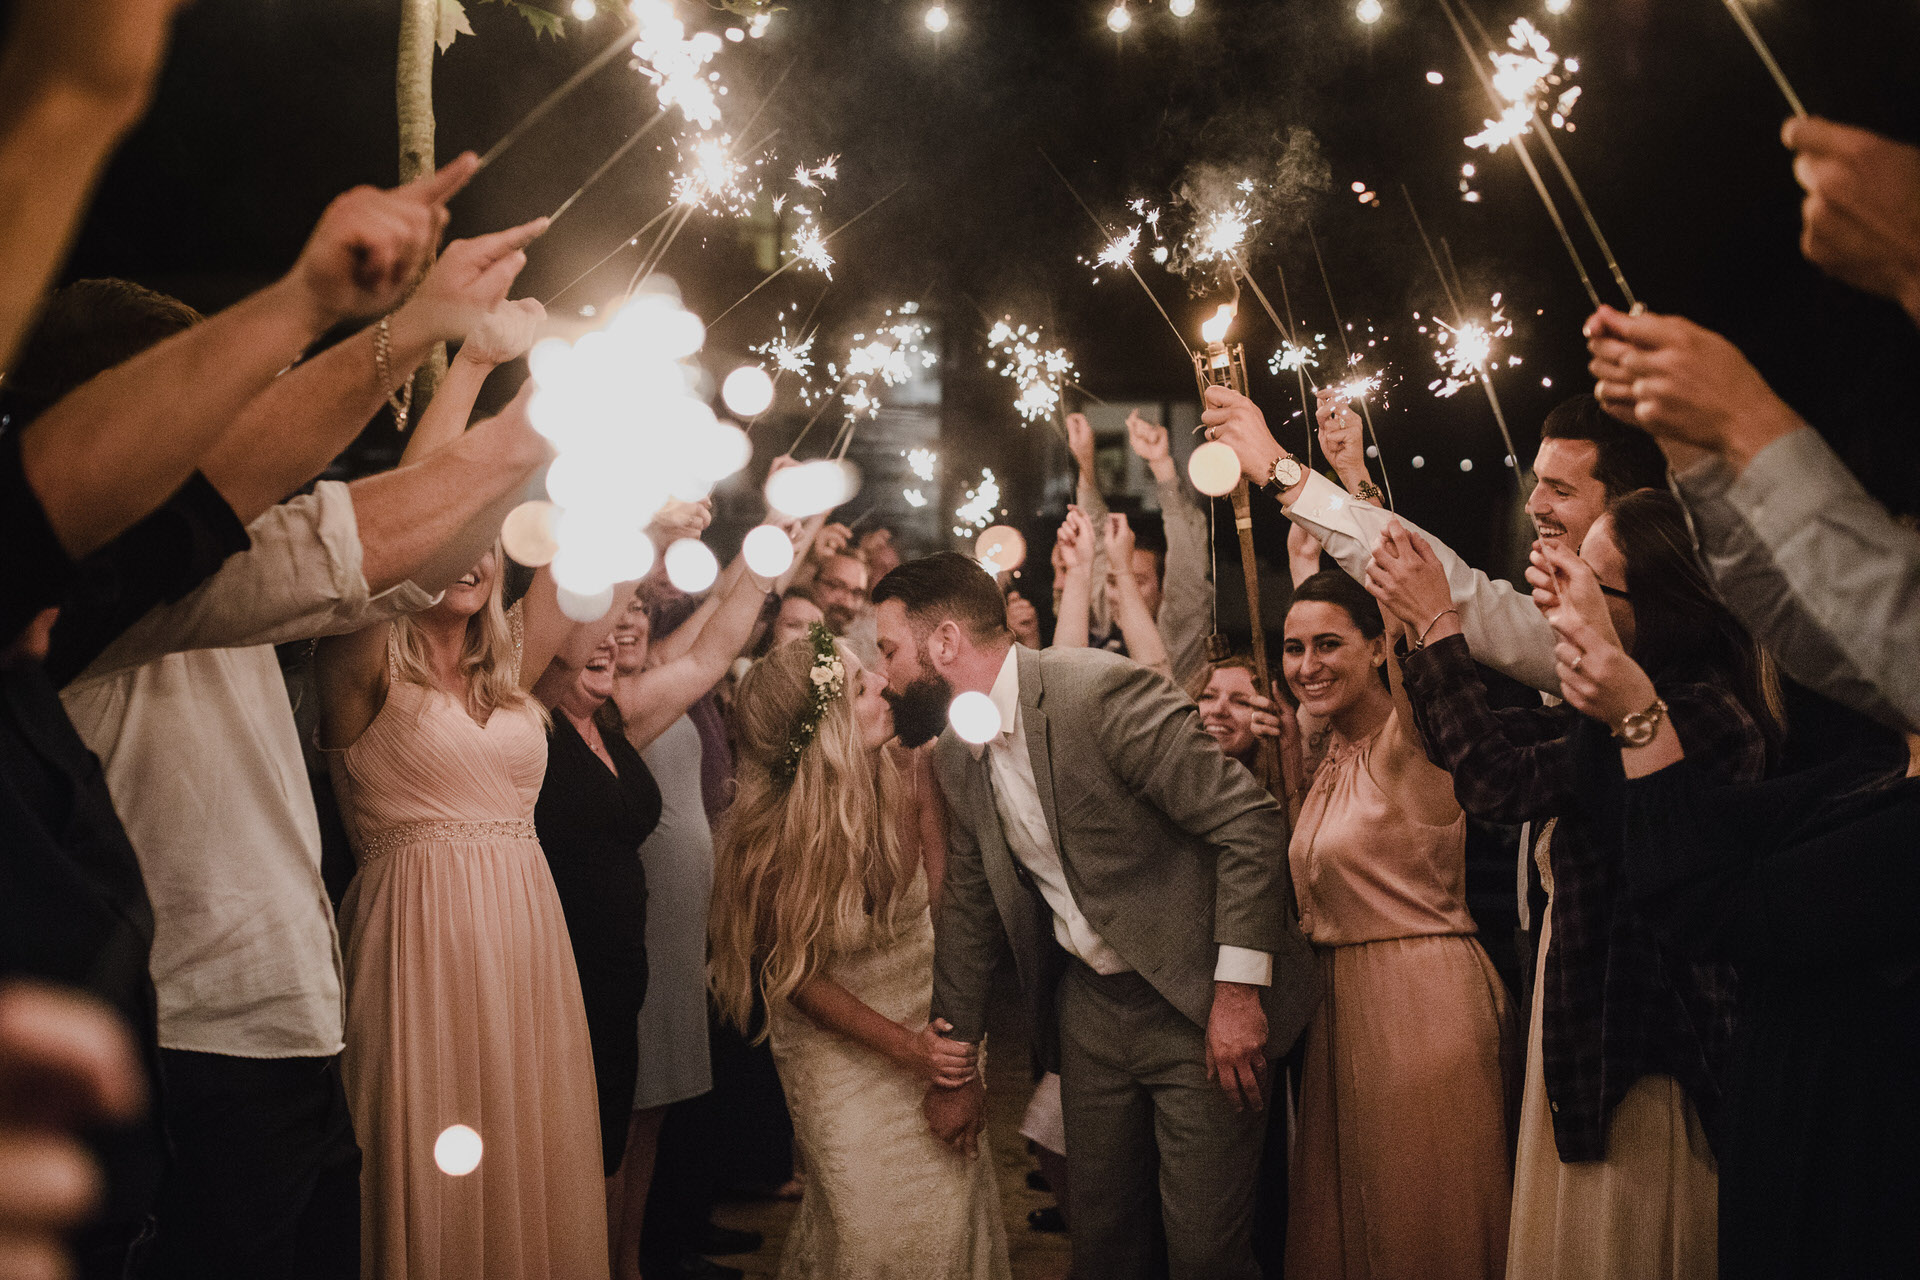 Muskoka Wedding - kissing under the sparklers